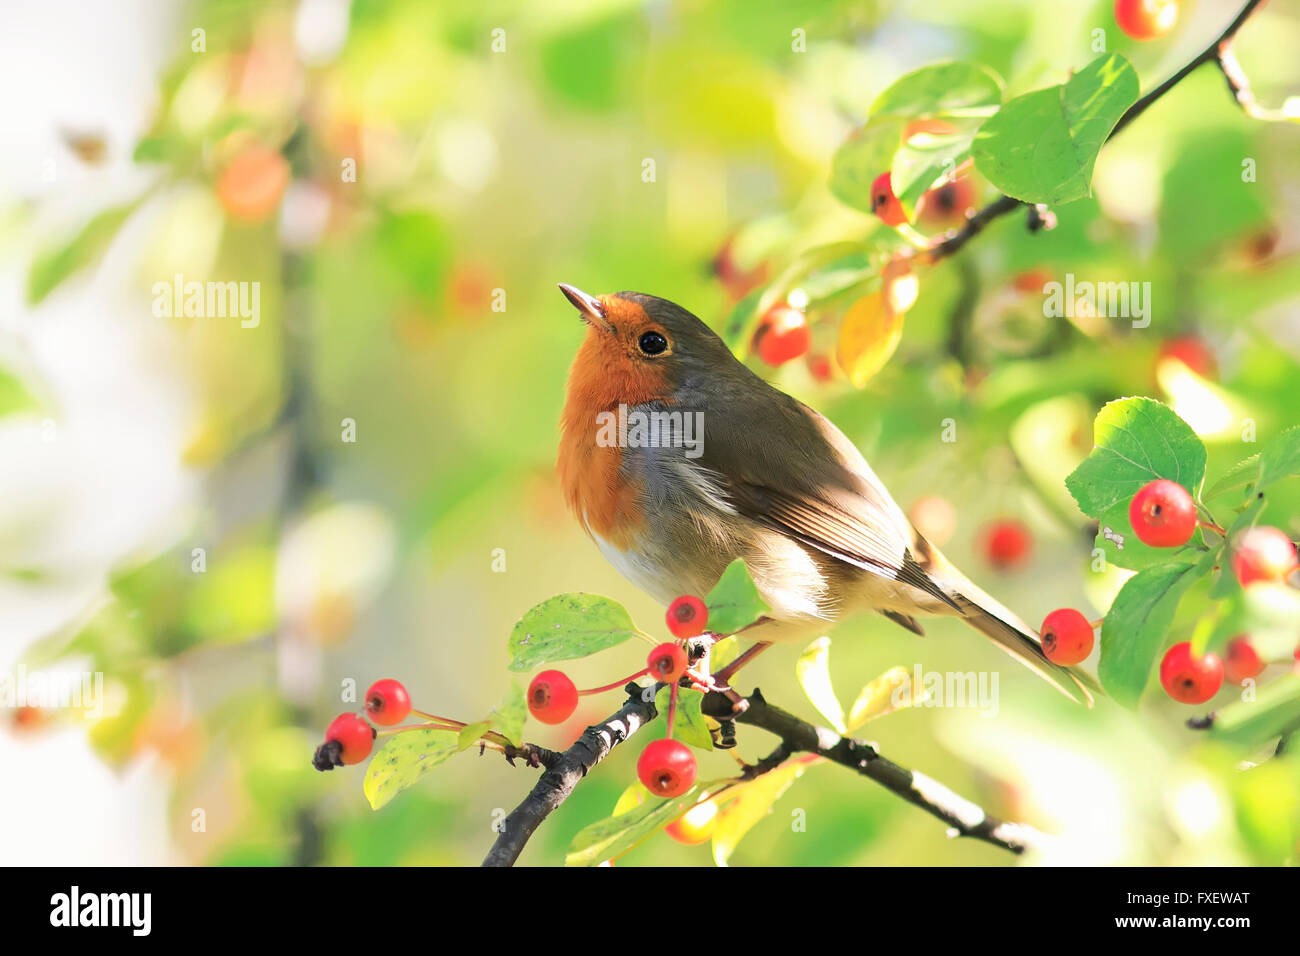 animal bird Robin sits looking beautiful Park branch apples berries red ginger - Stock Image